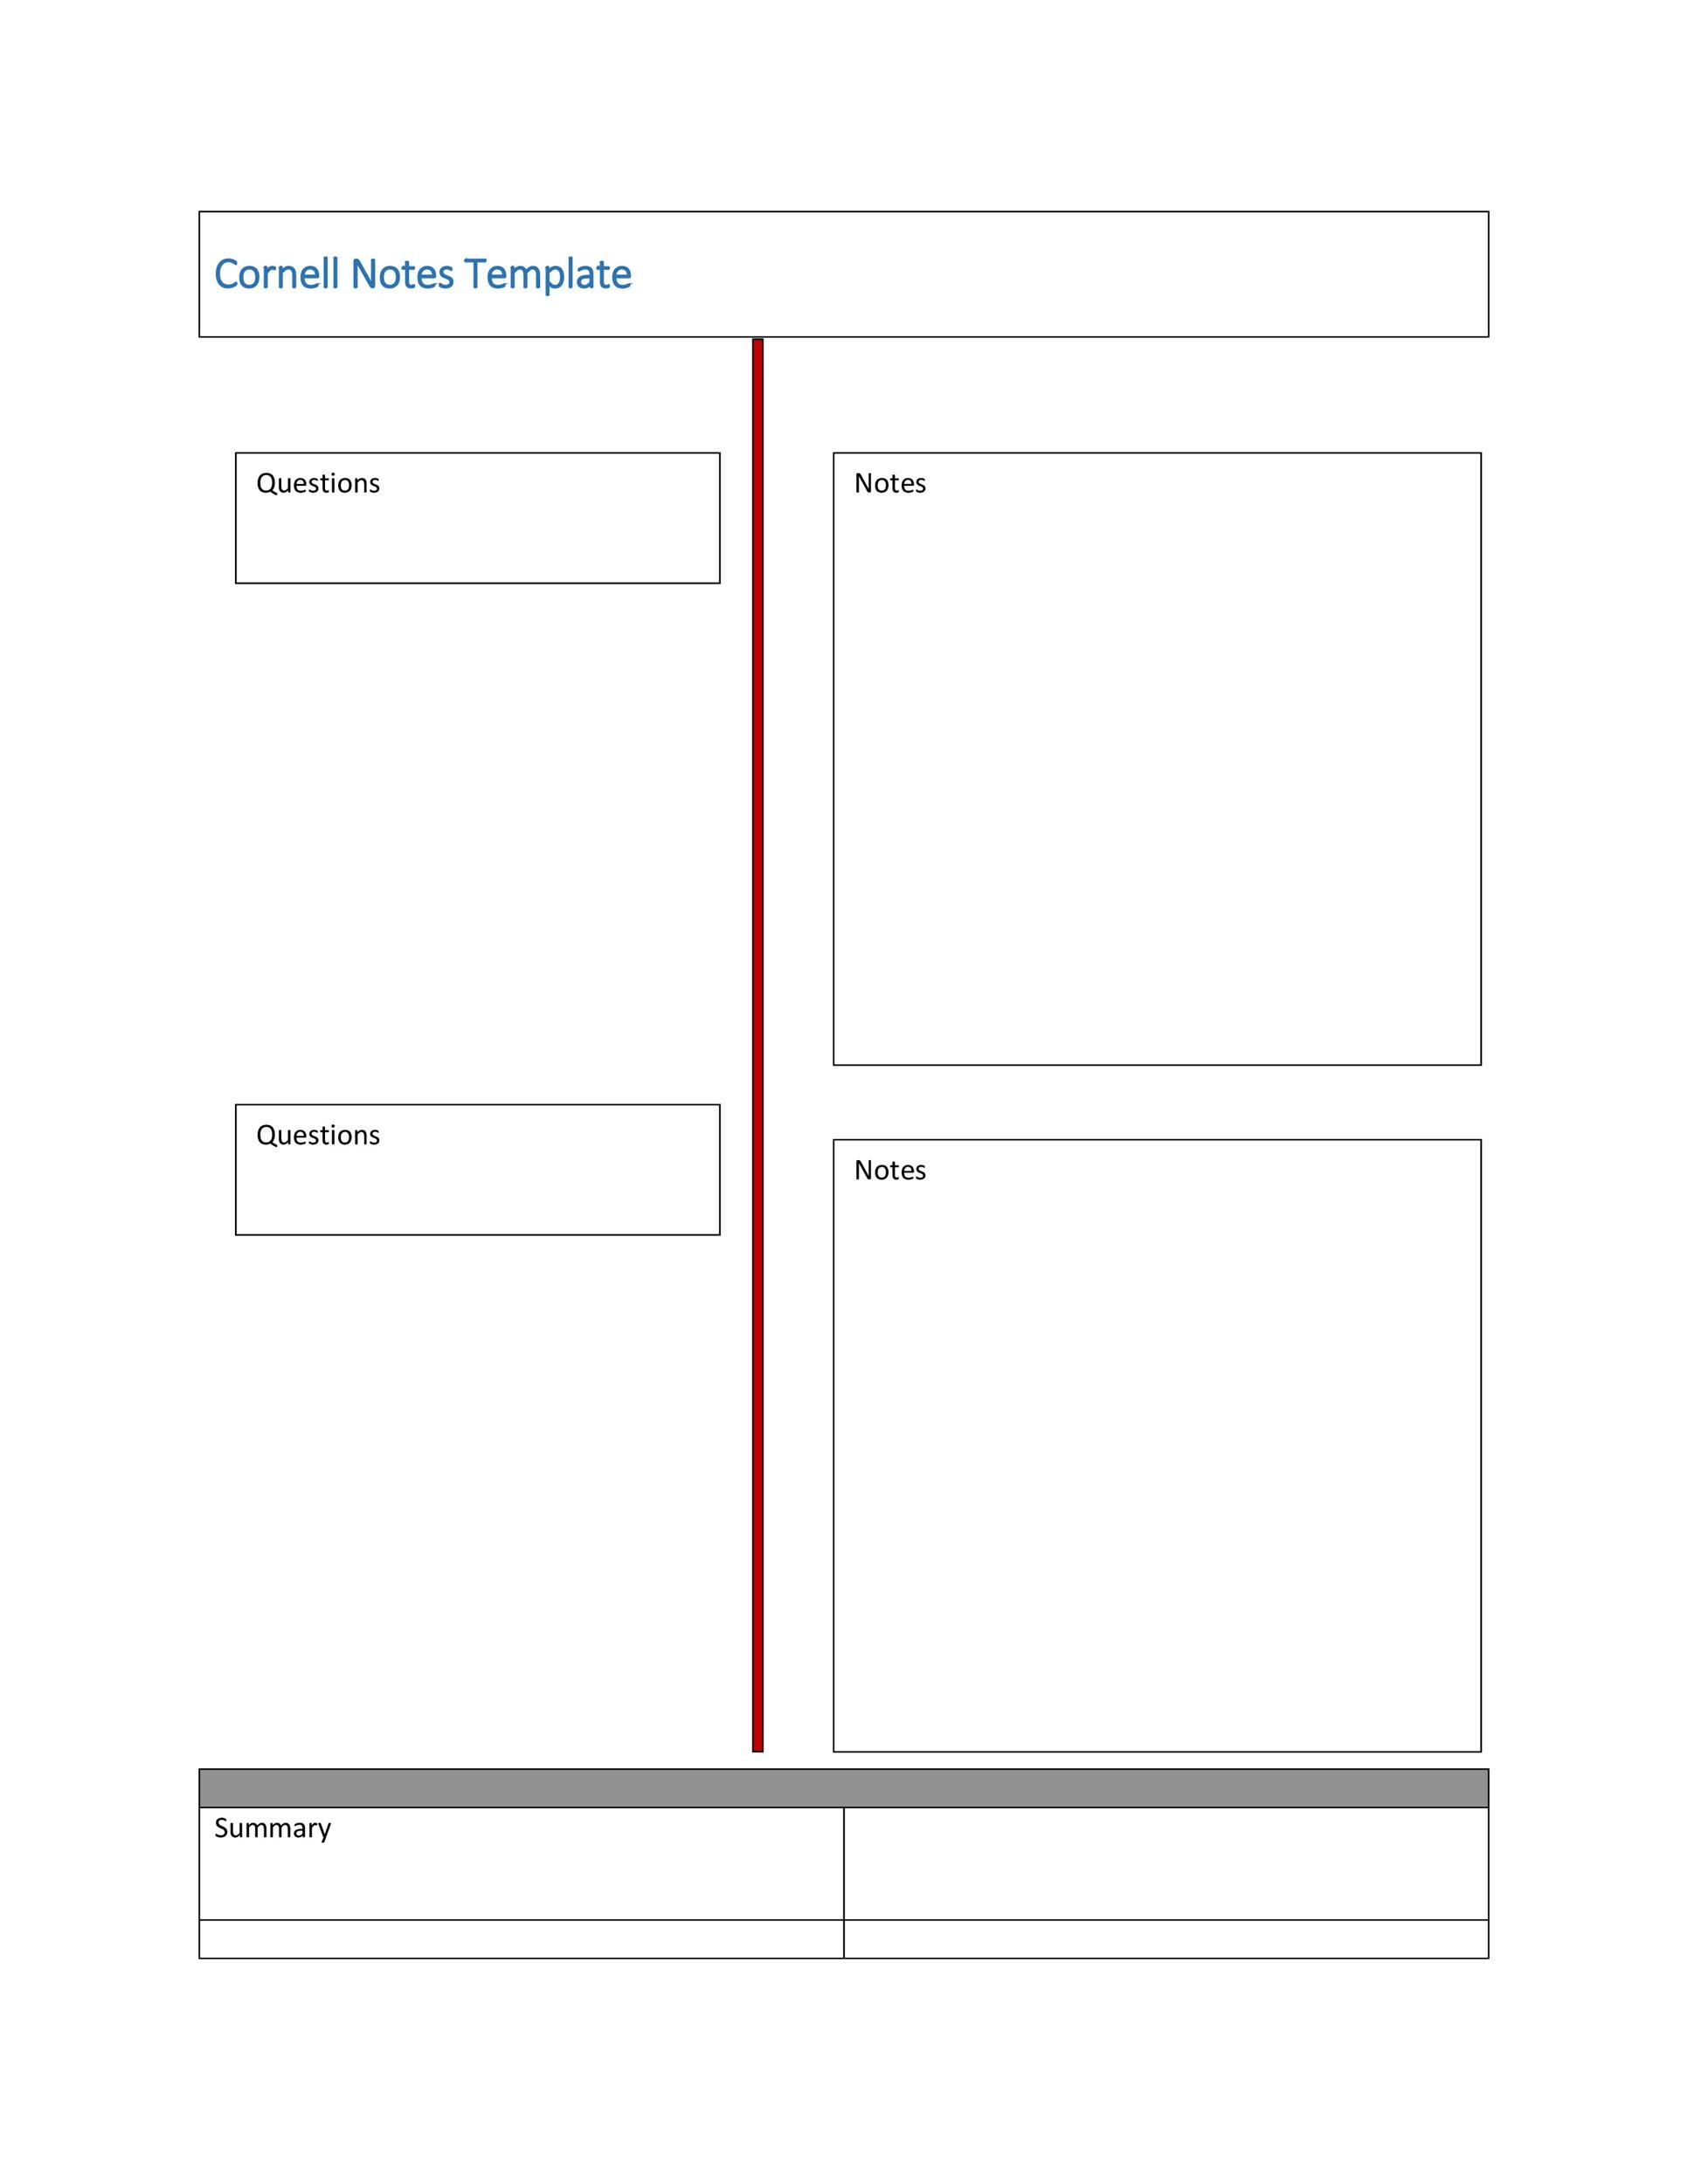 Free Cornell Notes Template 11